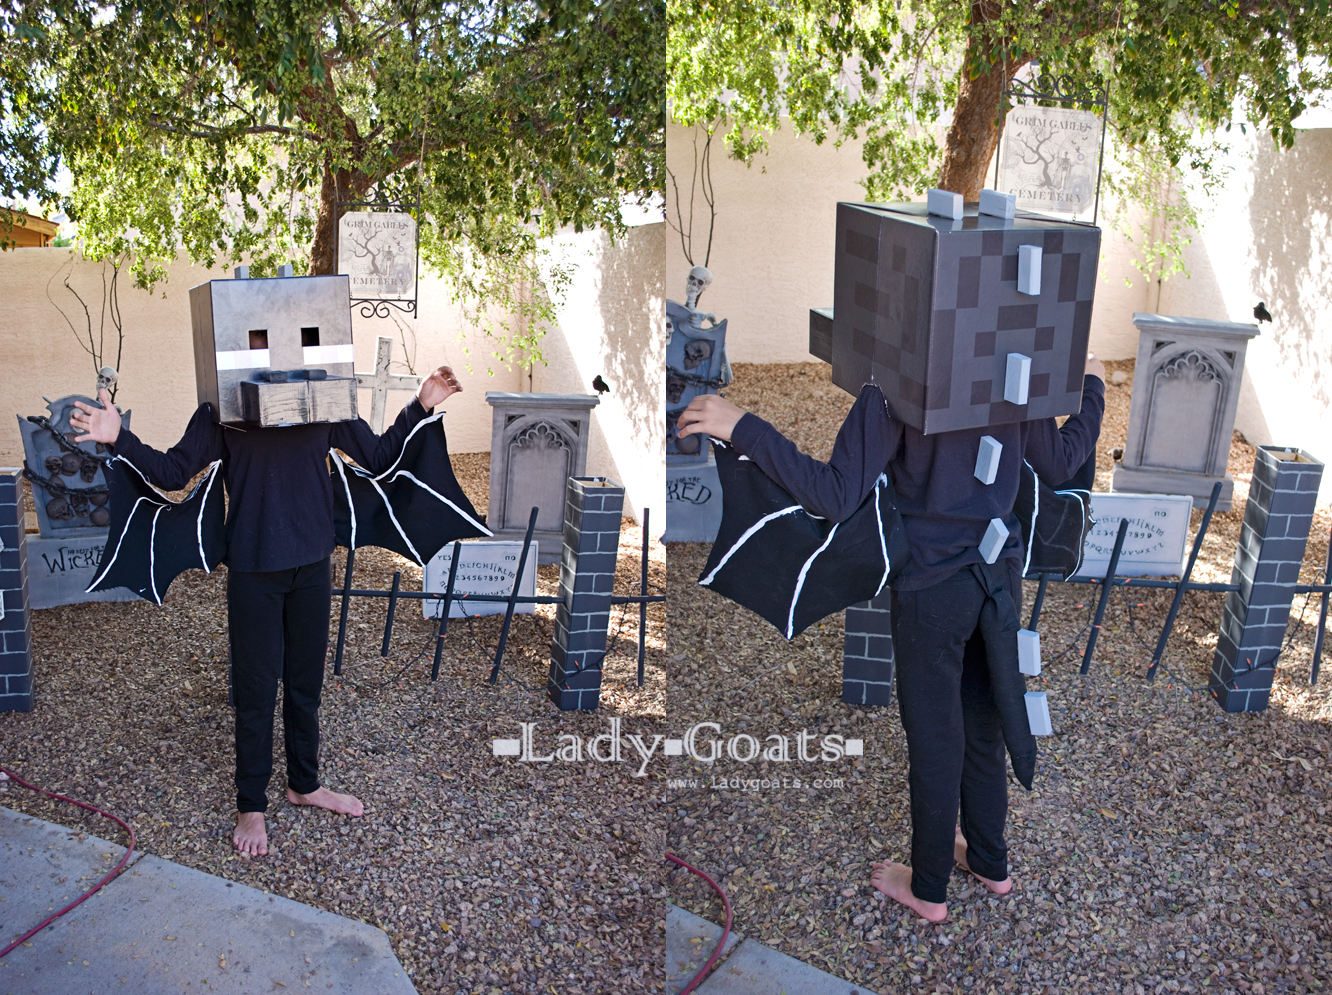 Lady goats updated diy ender dragon costume articulating wings diy minecraft weapons enderdragon costume solutioingenieria Choice Image